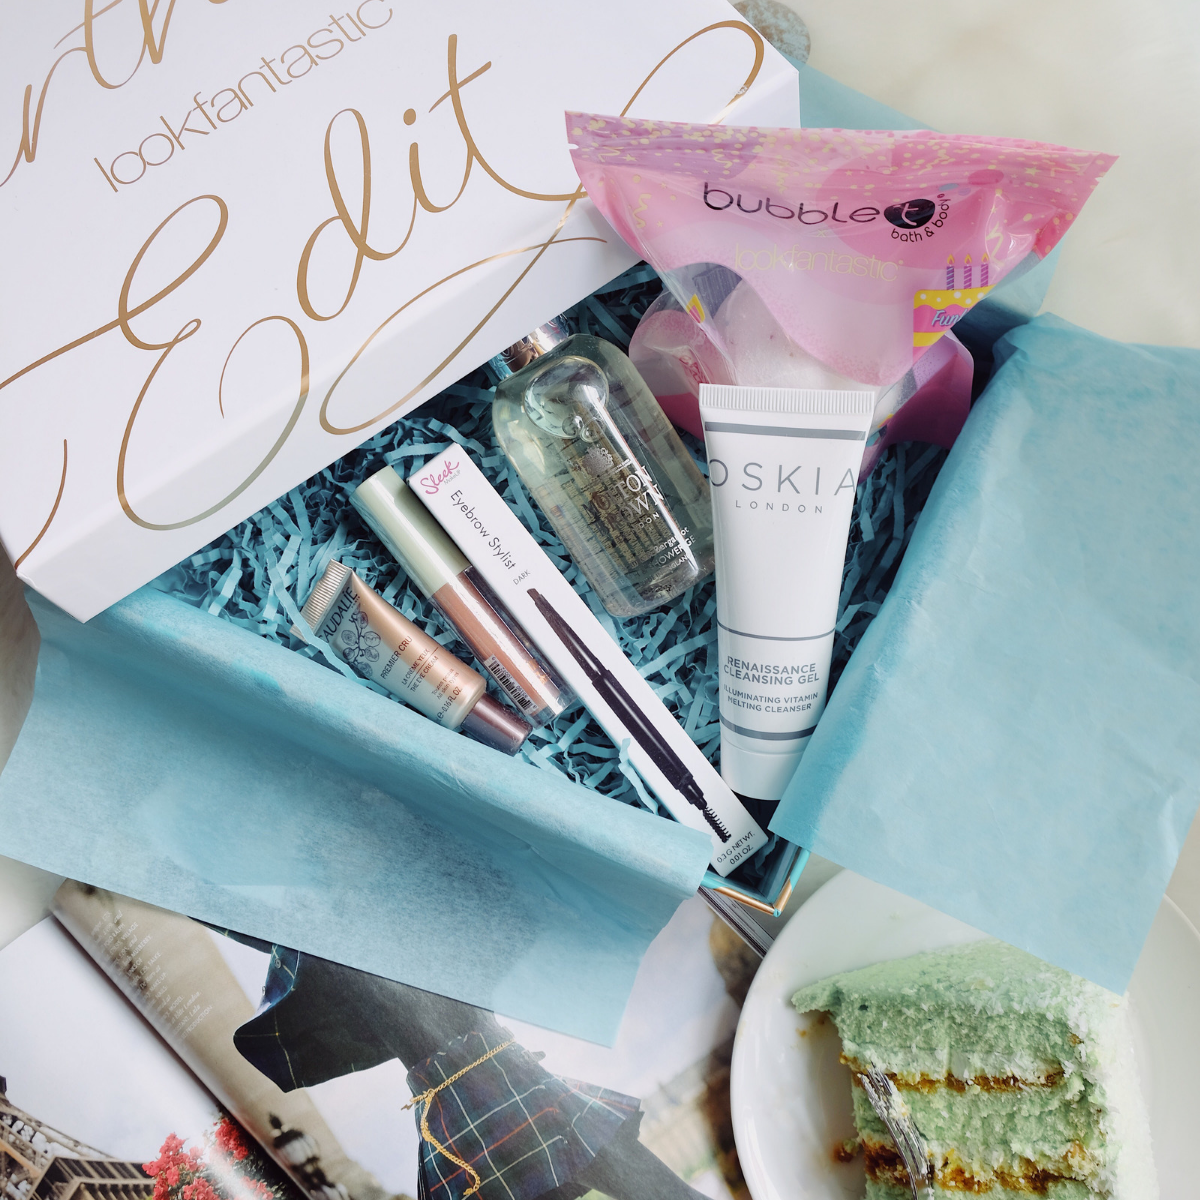 Check out this month's beauty box goodies. Image source:  @Layersofskins